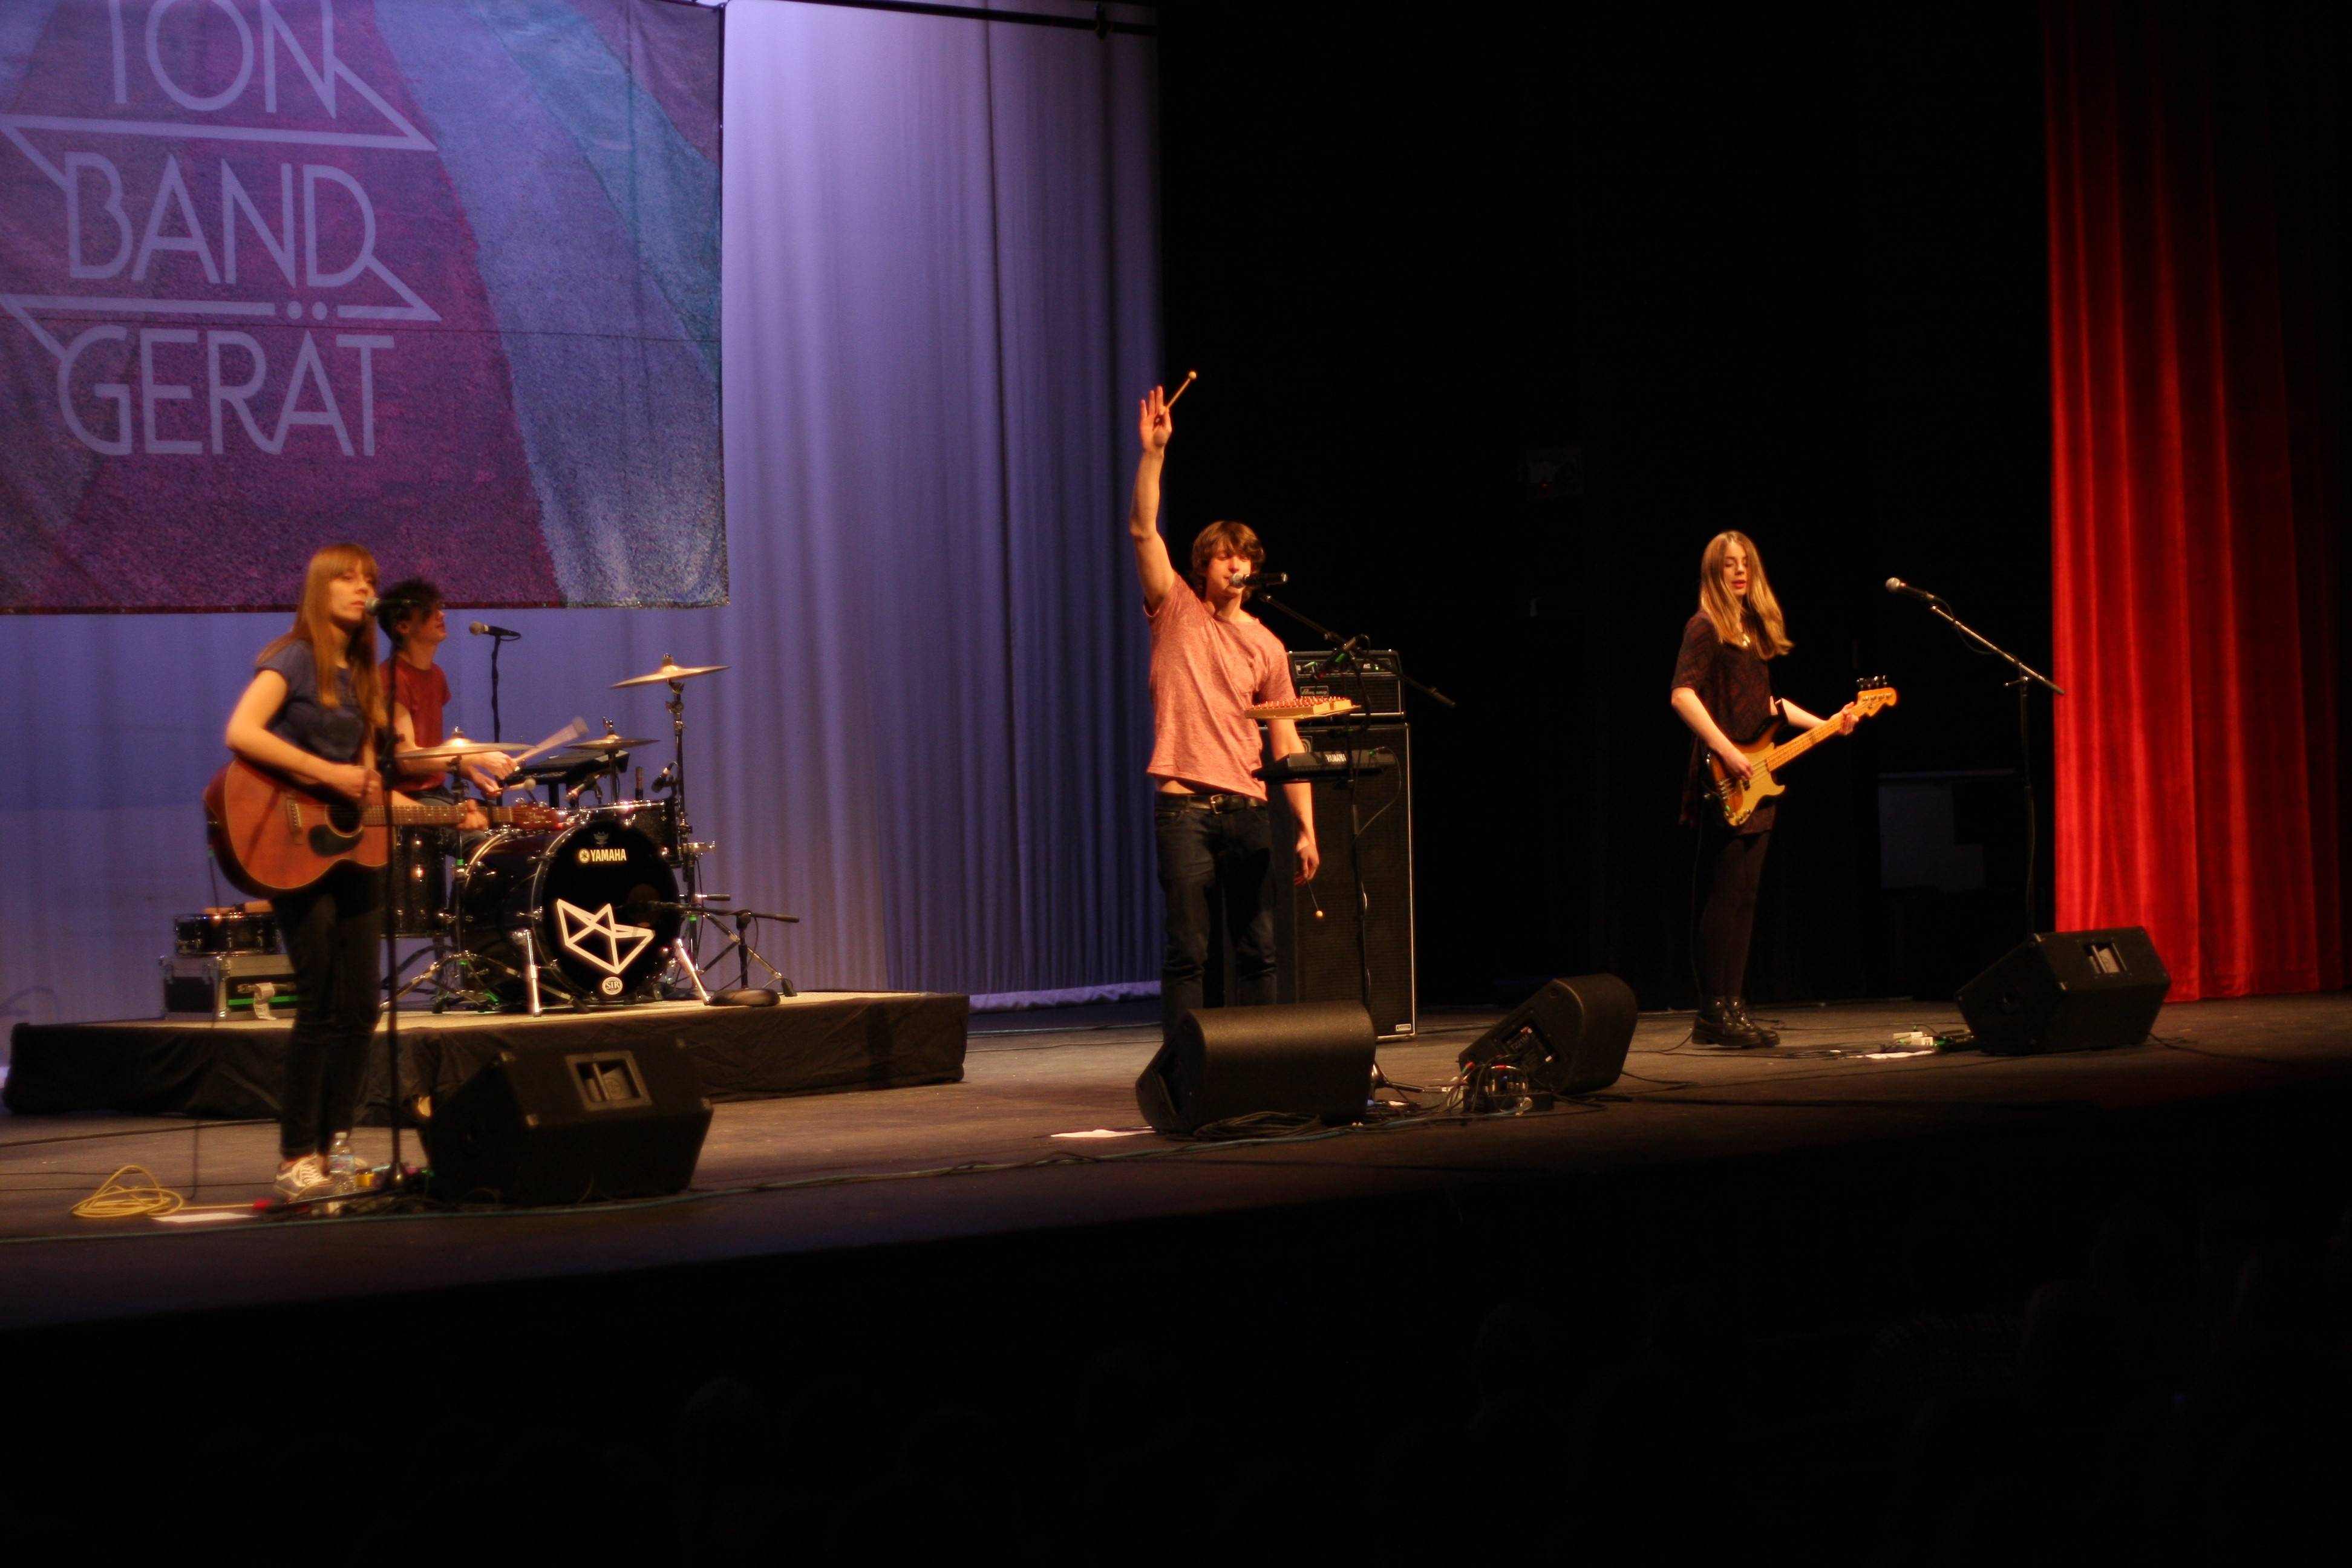 The German band Tonbandgerät recently performed before a sellout crowd at North Central College's Pfeiffer Hall.